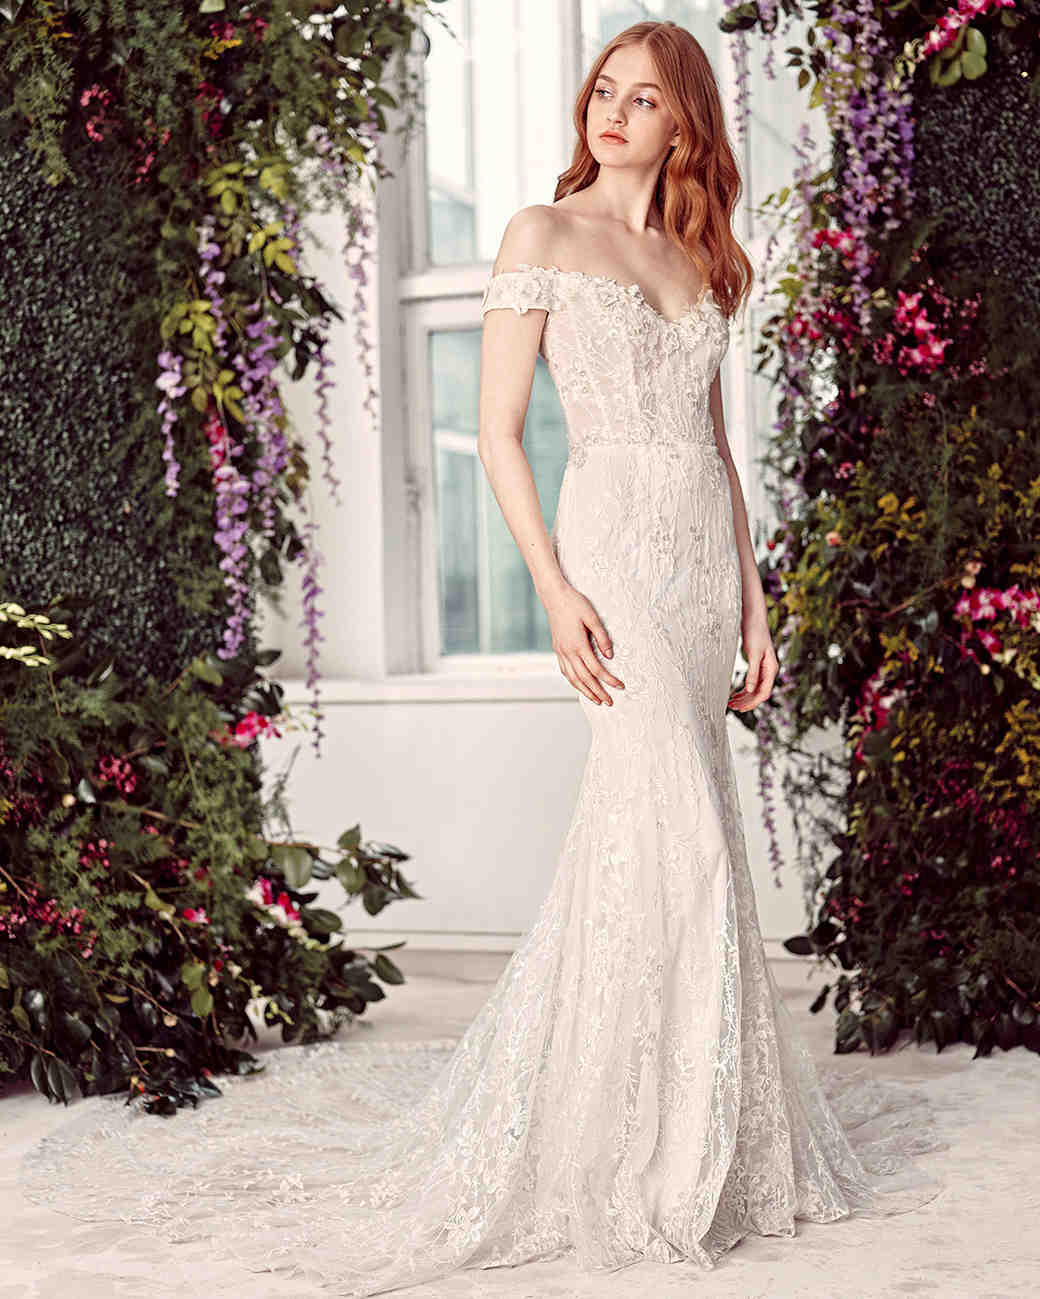 alyne by rita vinieris off-the-shoulder embroidered wedding dress spring 2020